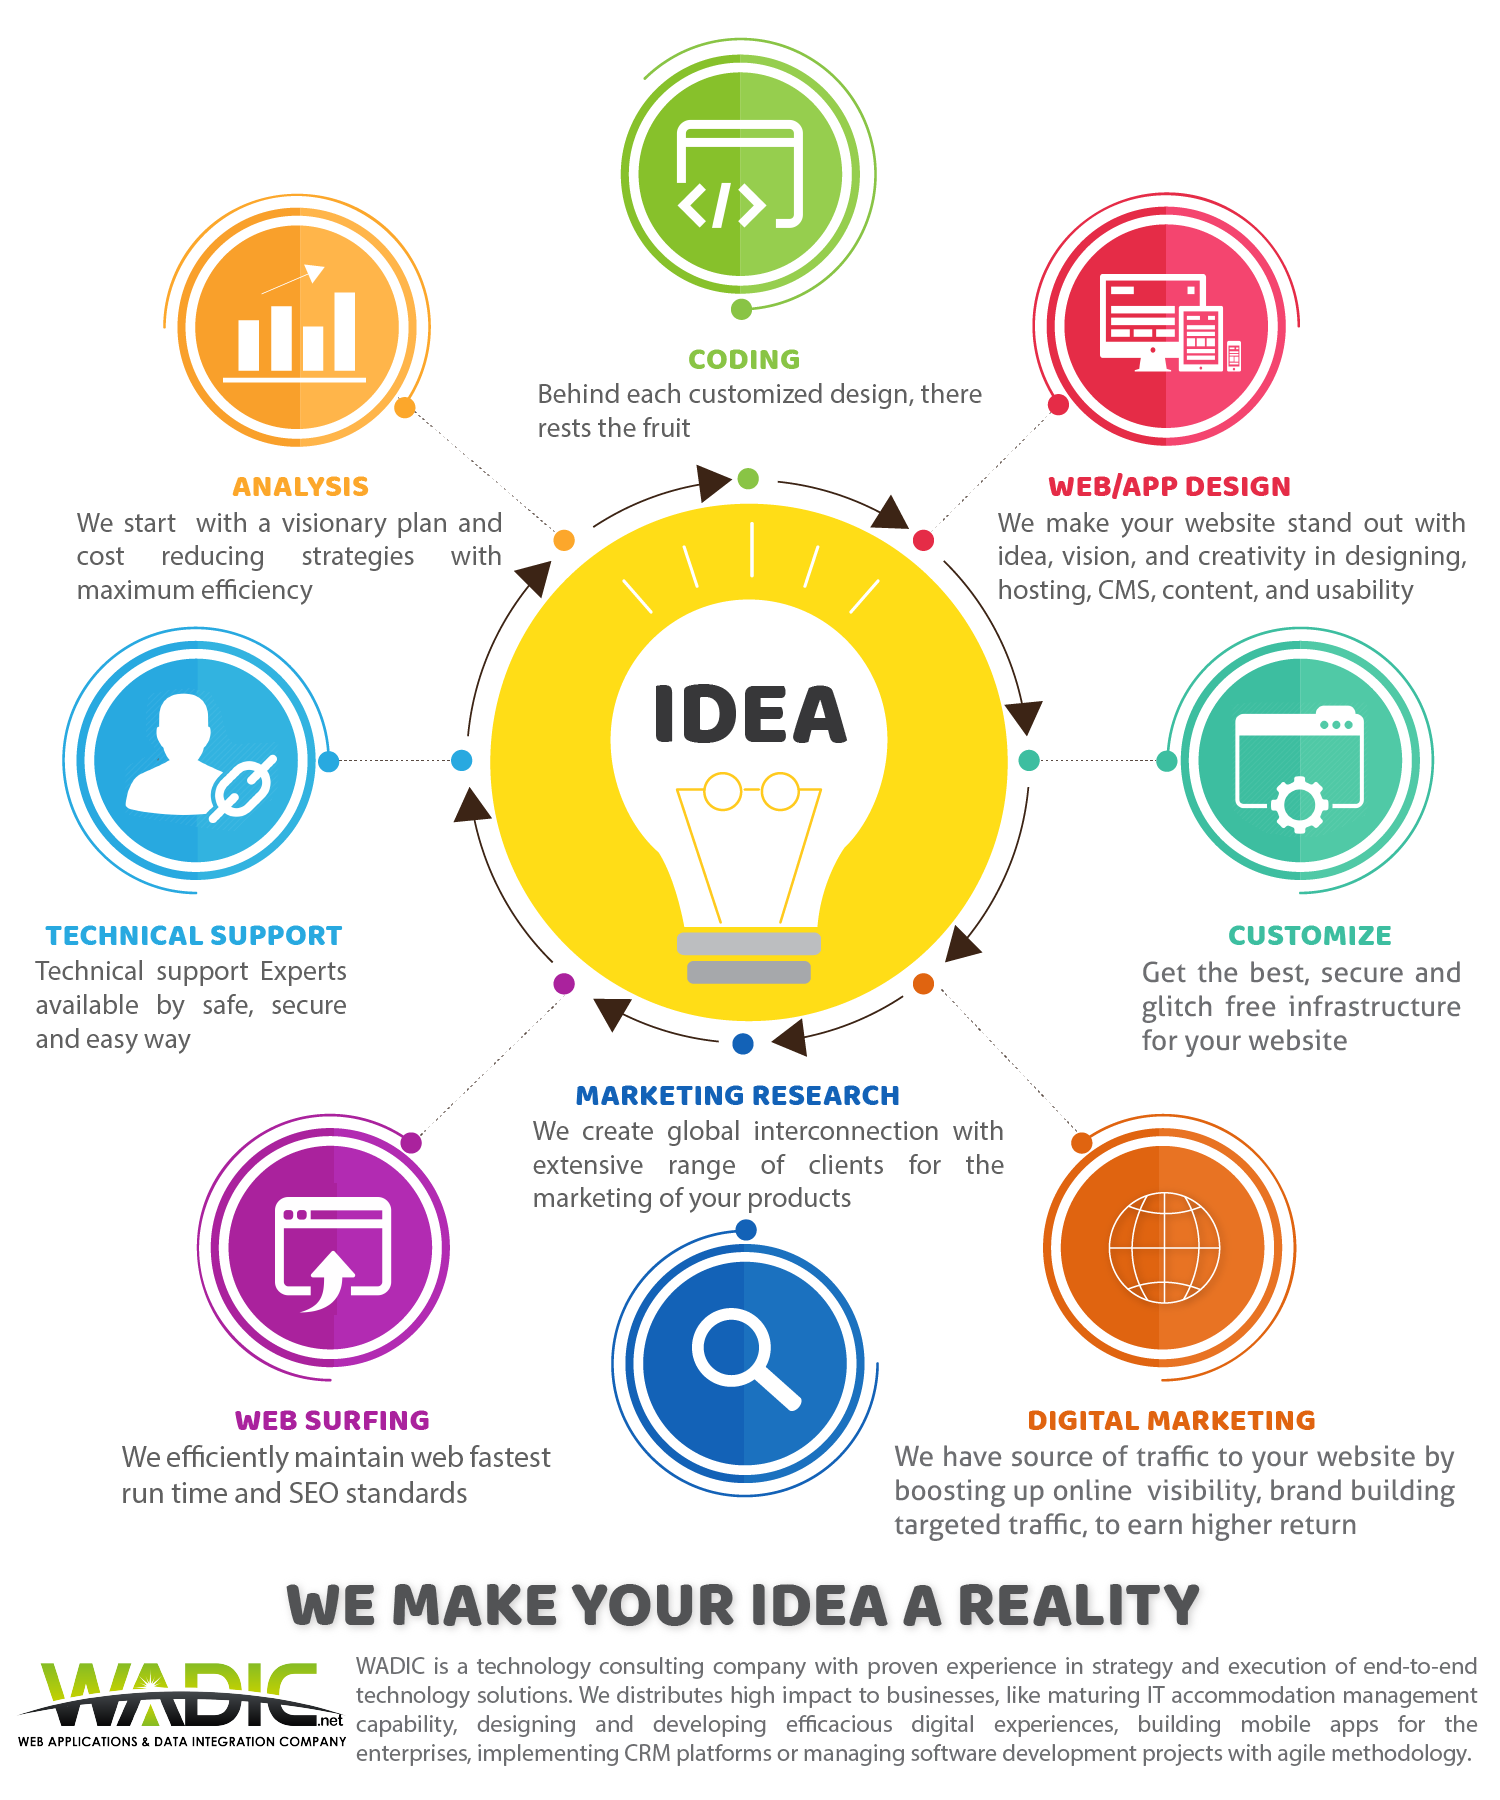 Technological Inventions Is Day To Day Game And Catching The Latest Web Design Trends Can Become Critic Latest Web Design Trends App Development Web App Design